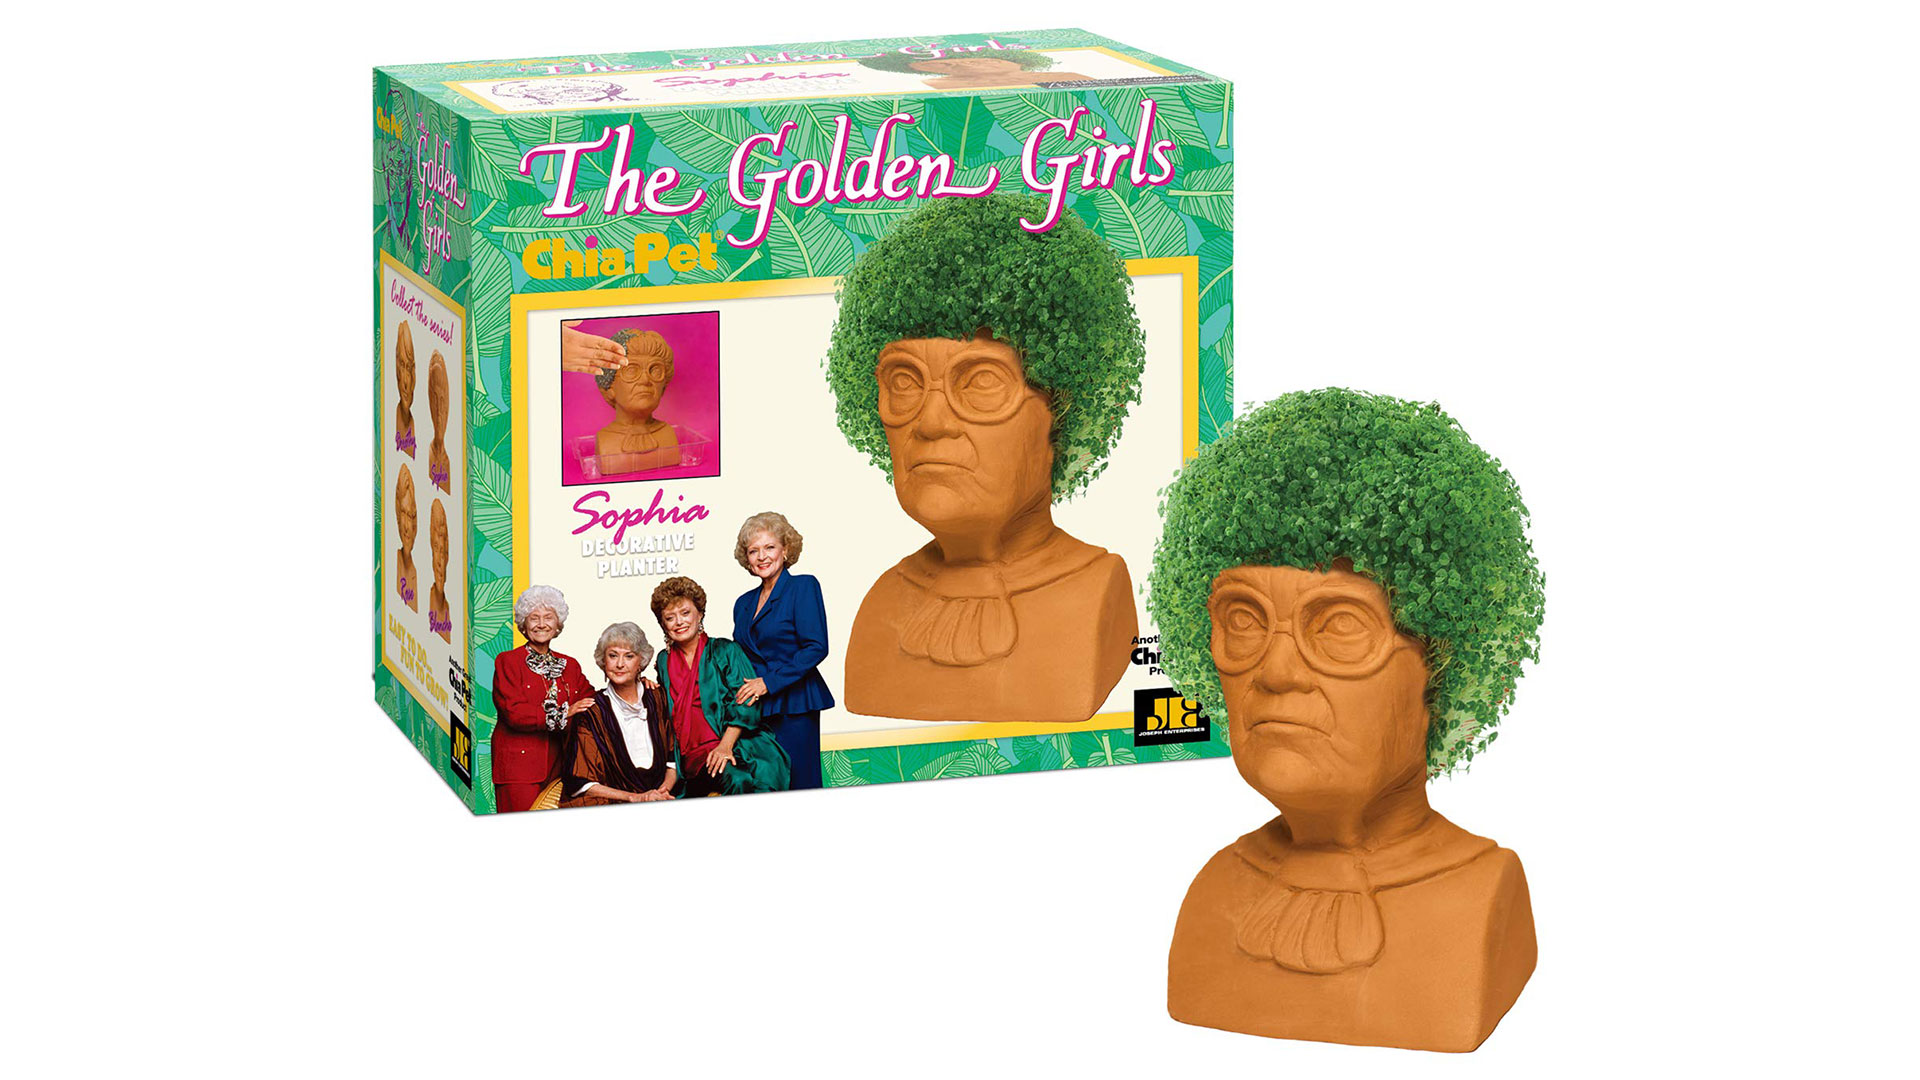 Golden Girl Chia Pet Sophia